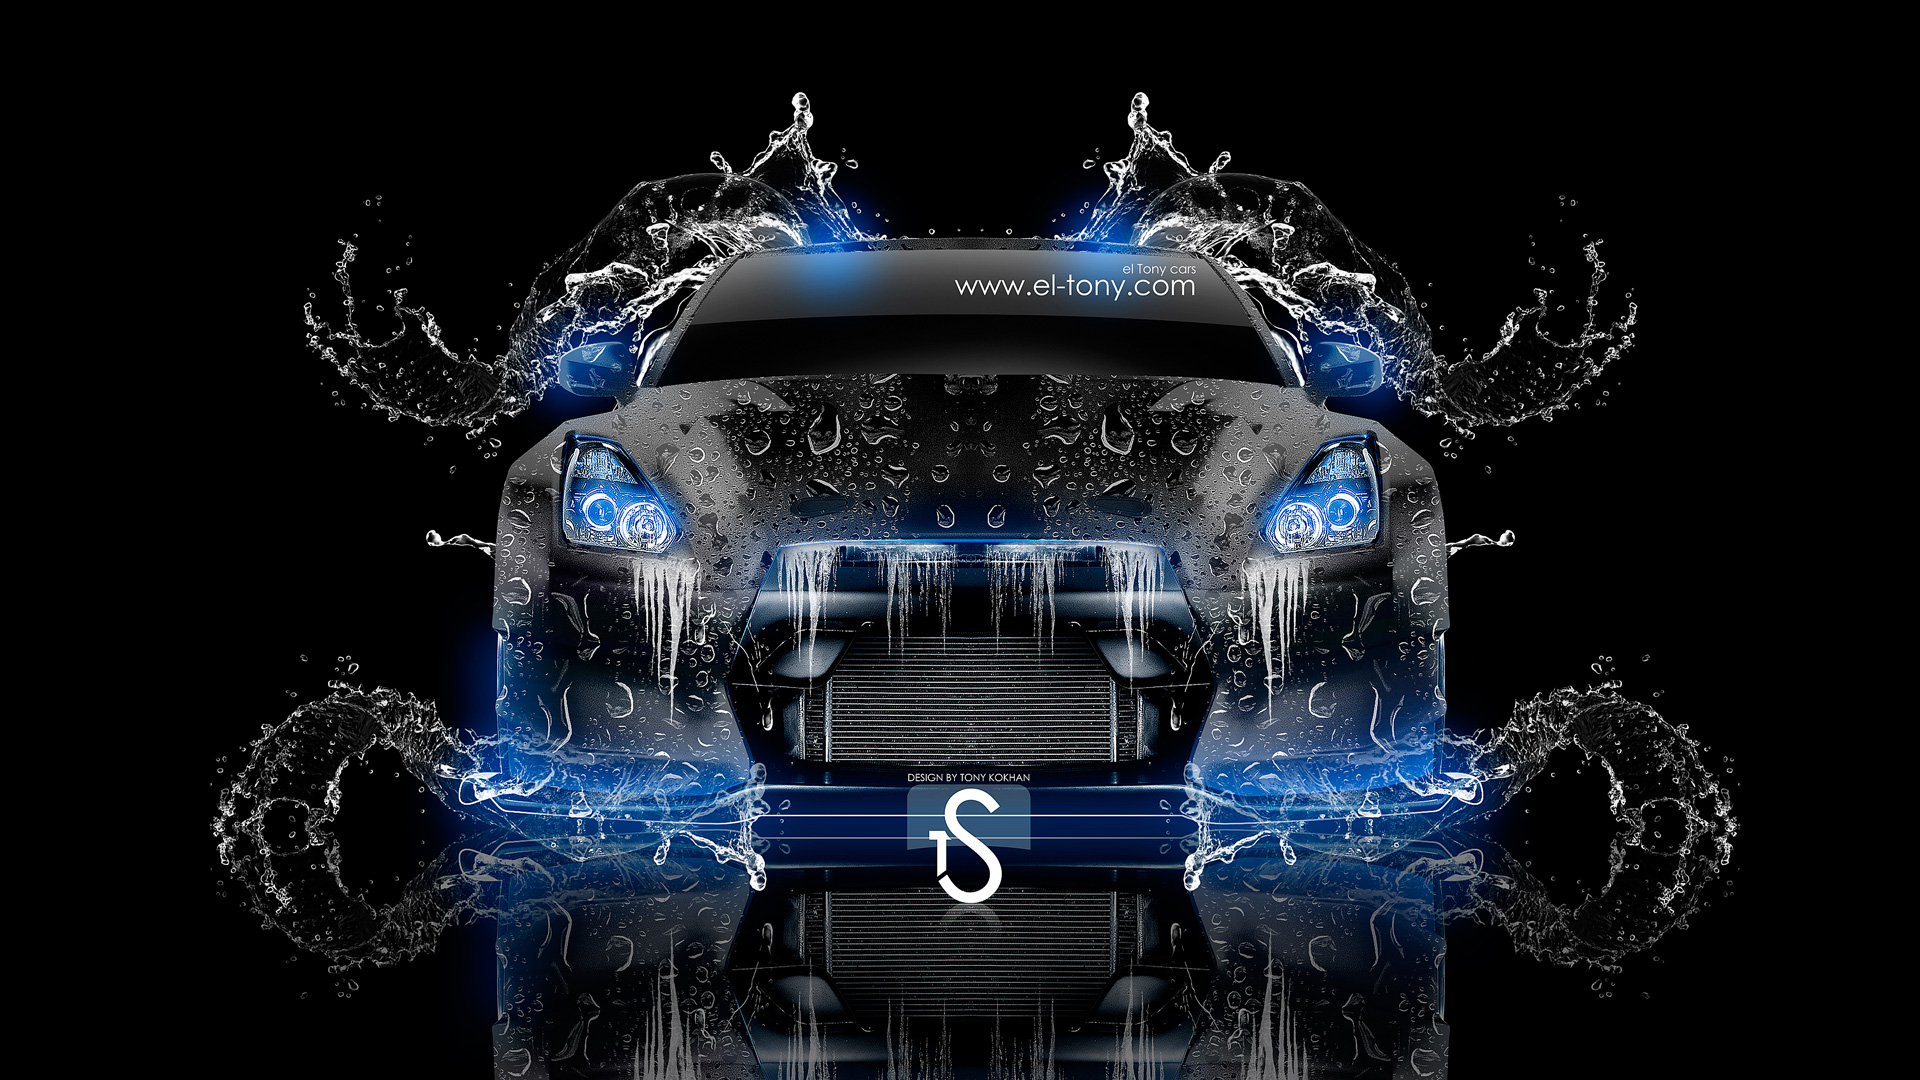 Nissan Gtr R35 Front Water Tuning Car 2013 El Tony